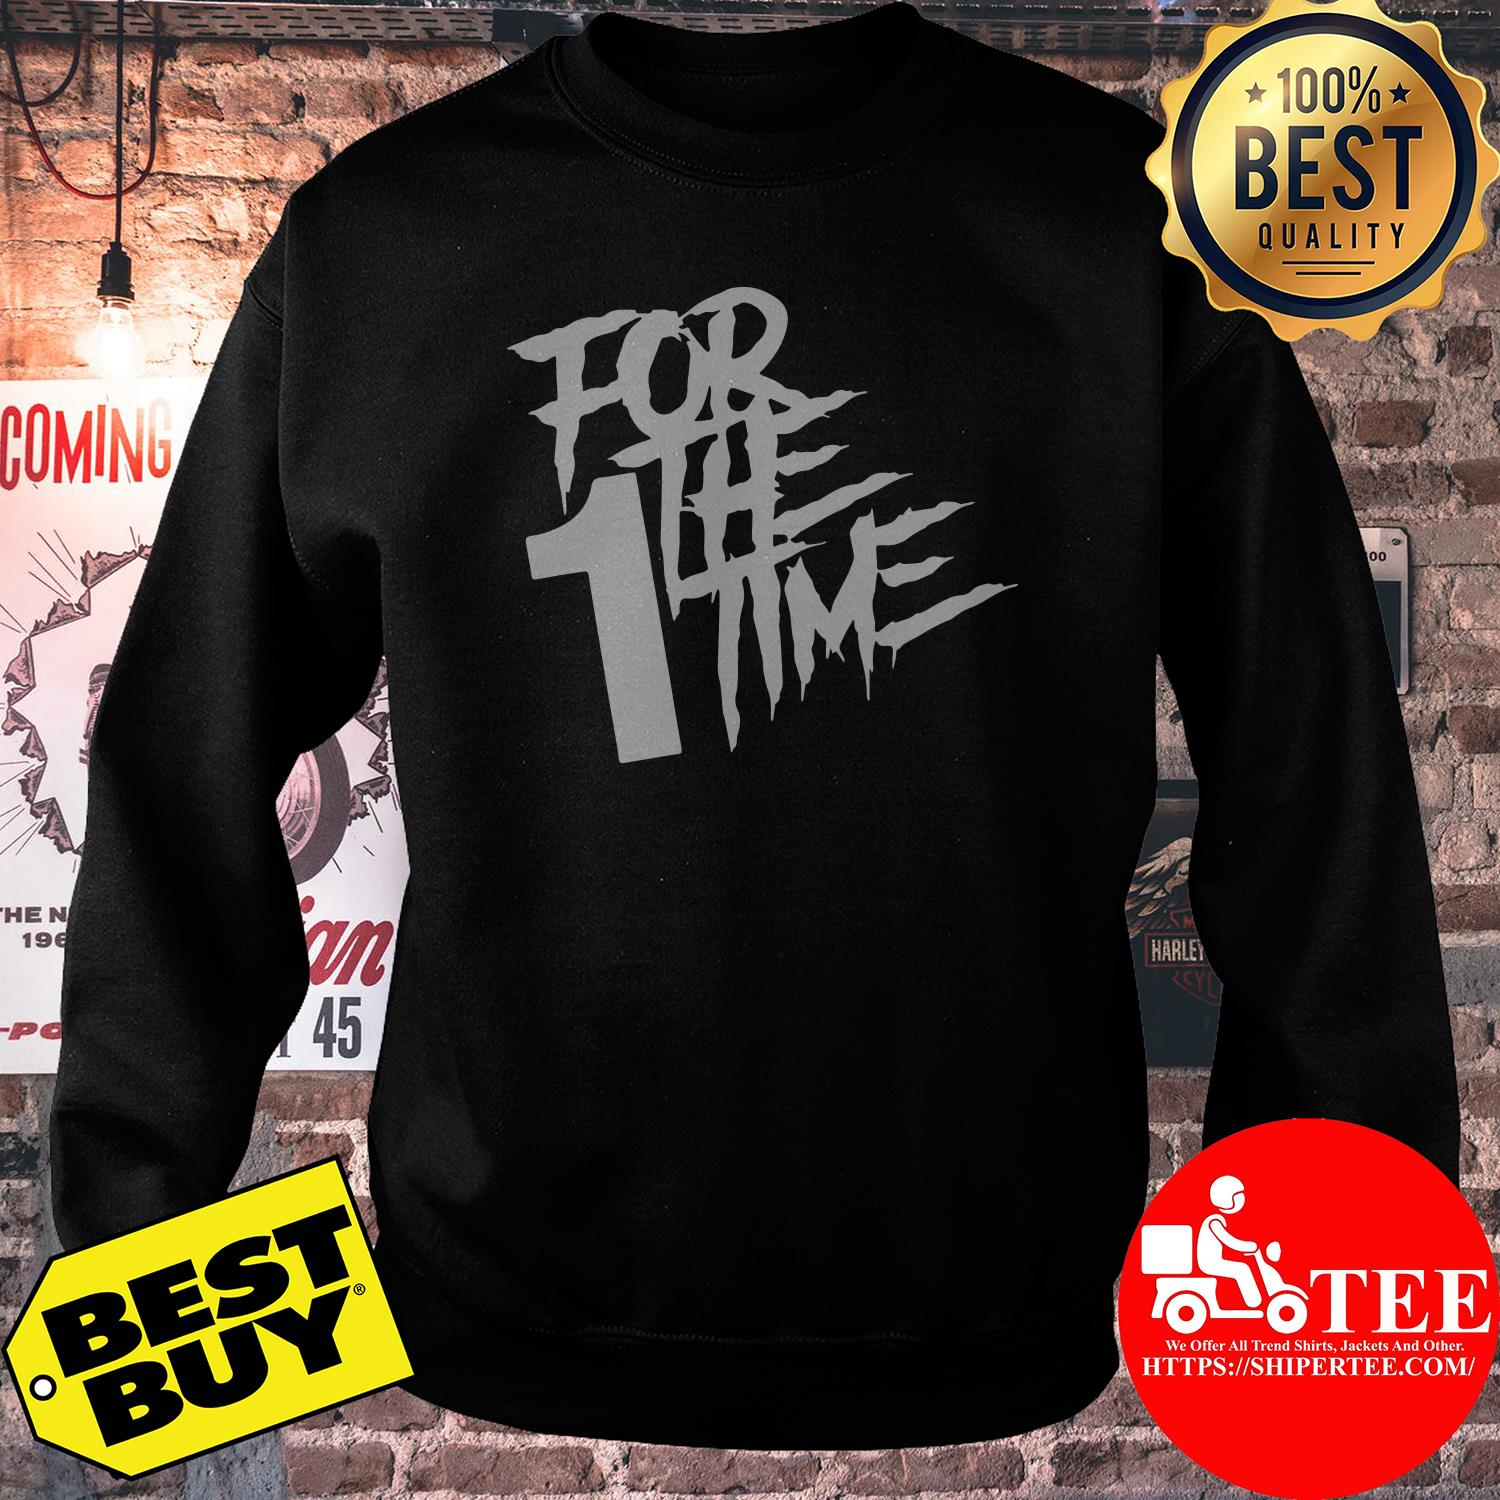 Official For the first time sweatshirt